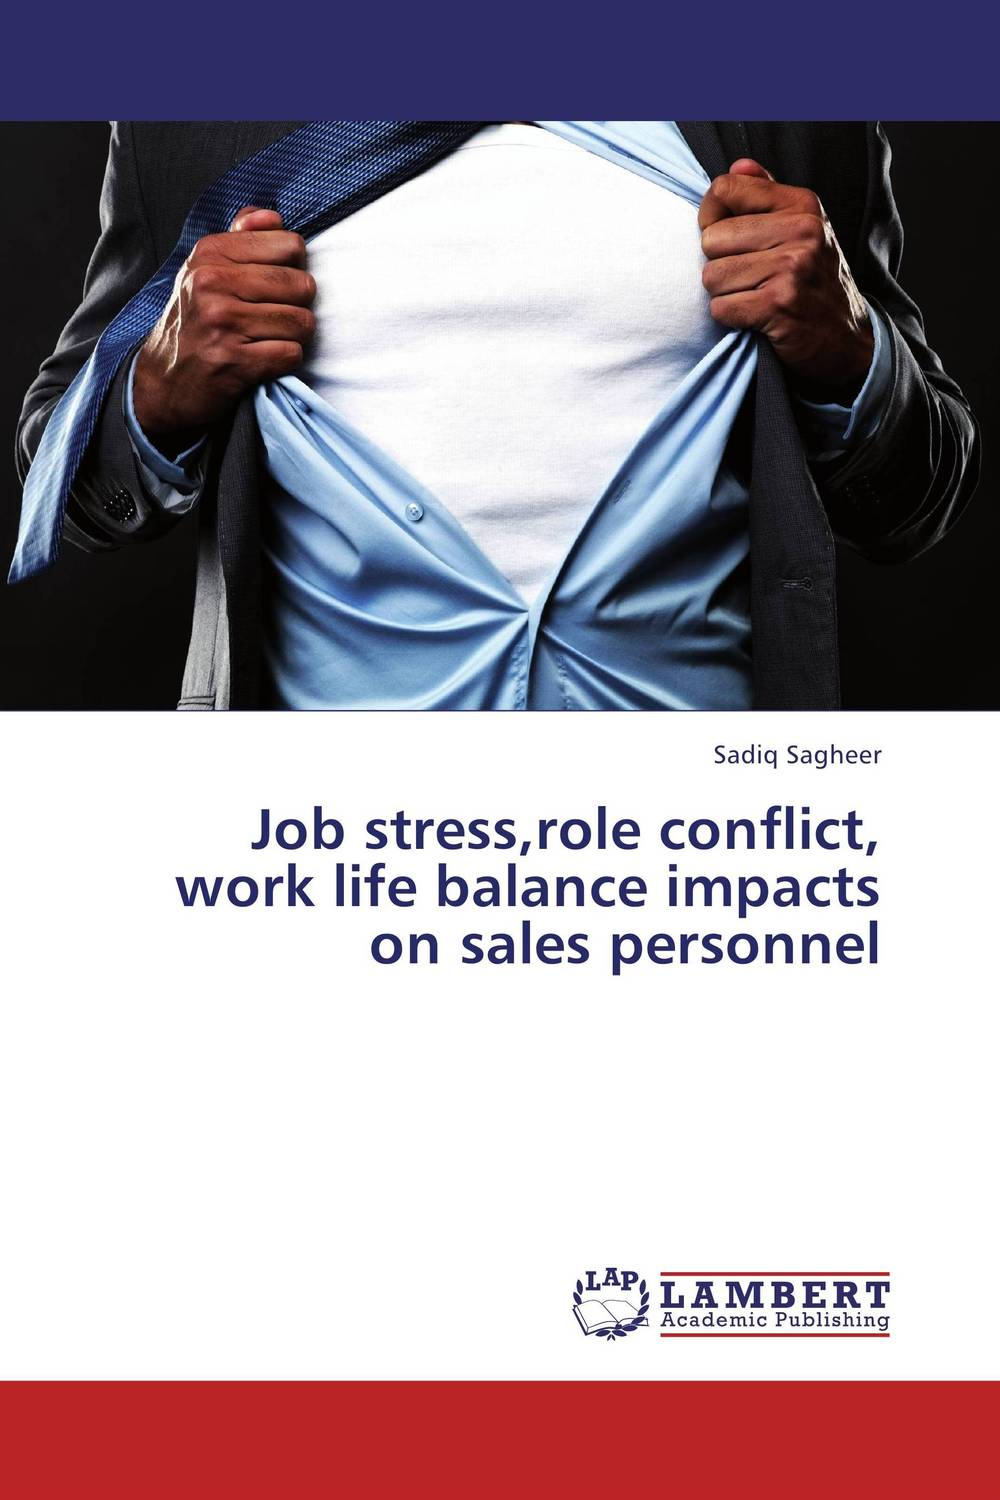 Job stress,role conflict, work life balance impacts on sales personnel impact of job satisfaction on turnover intentions